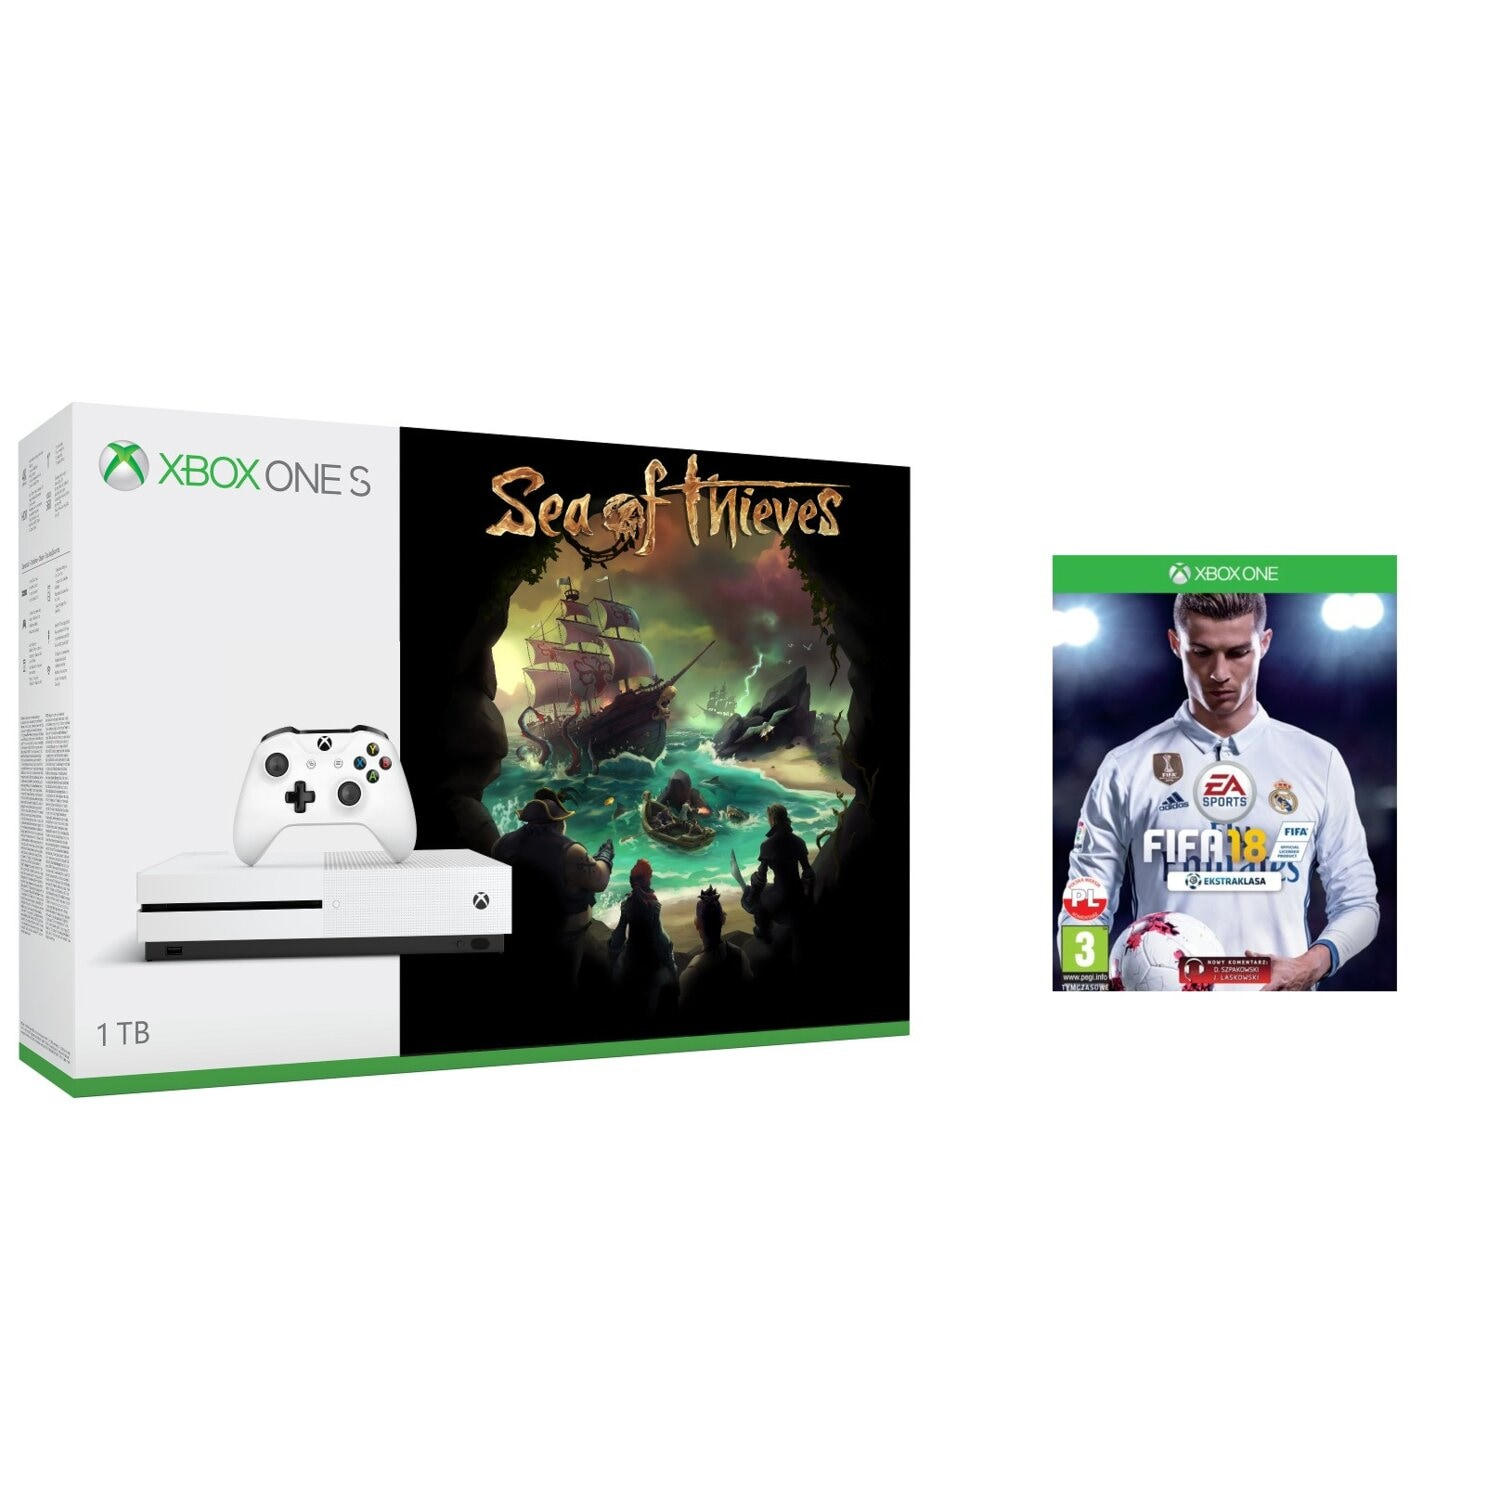 Konsola MICROSOFT Xbox One S 1TB + Sea of Thieves + FIFA 18 + 6 mies. Live Gold